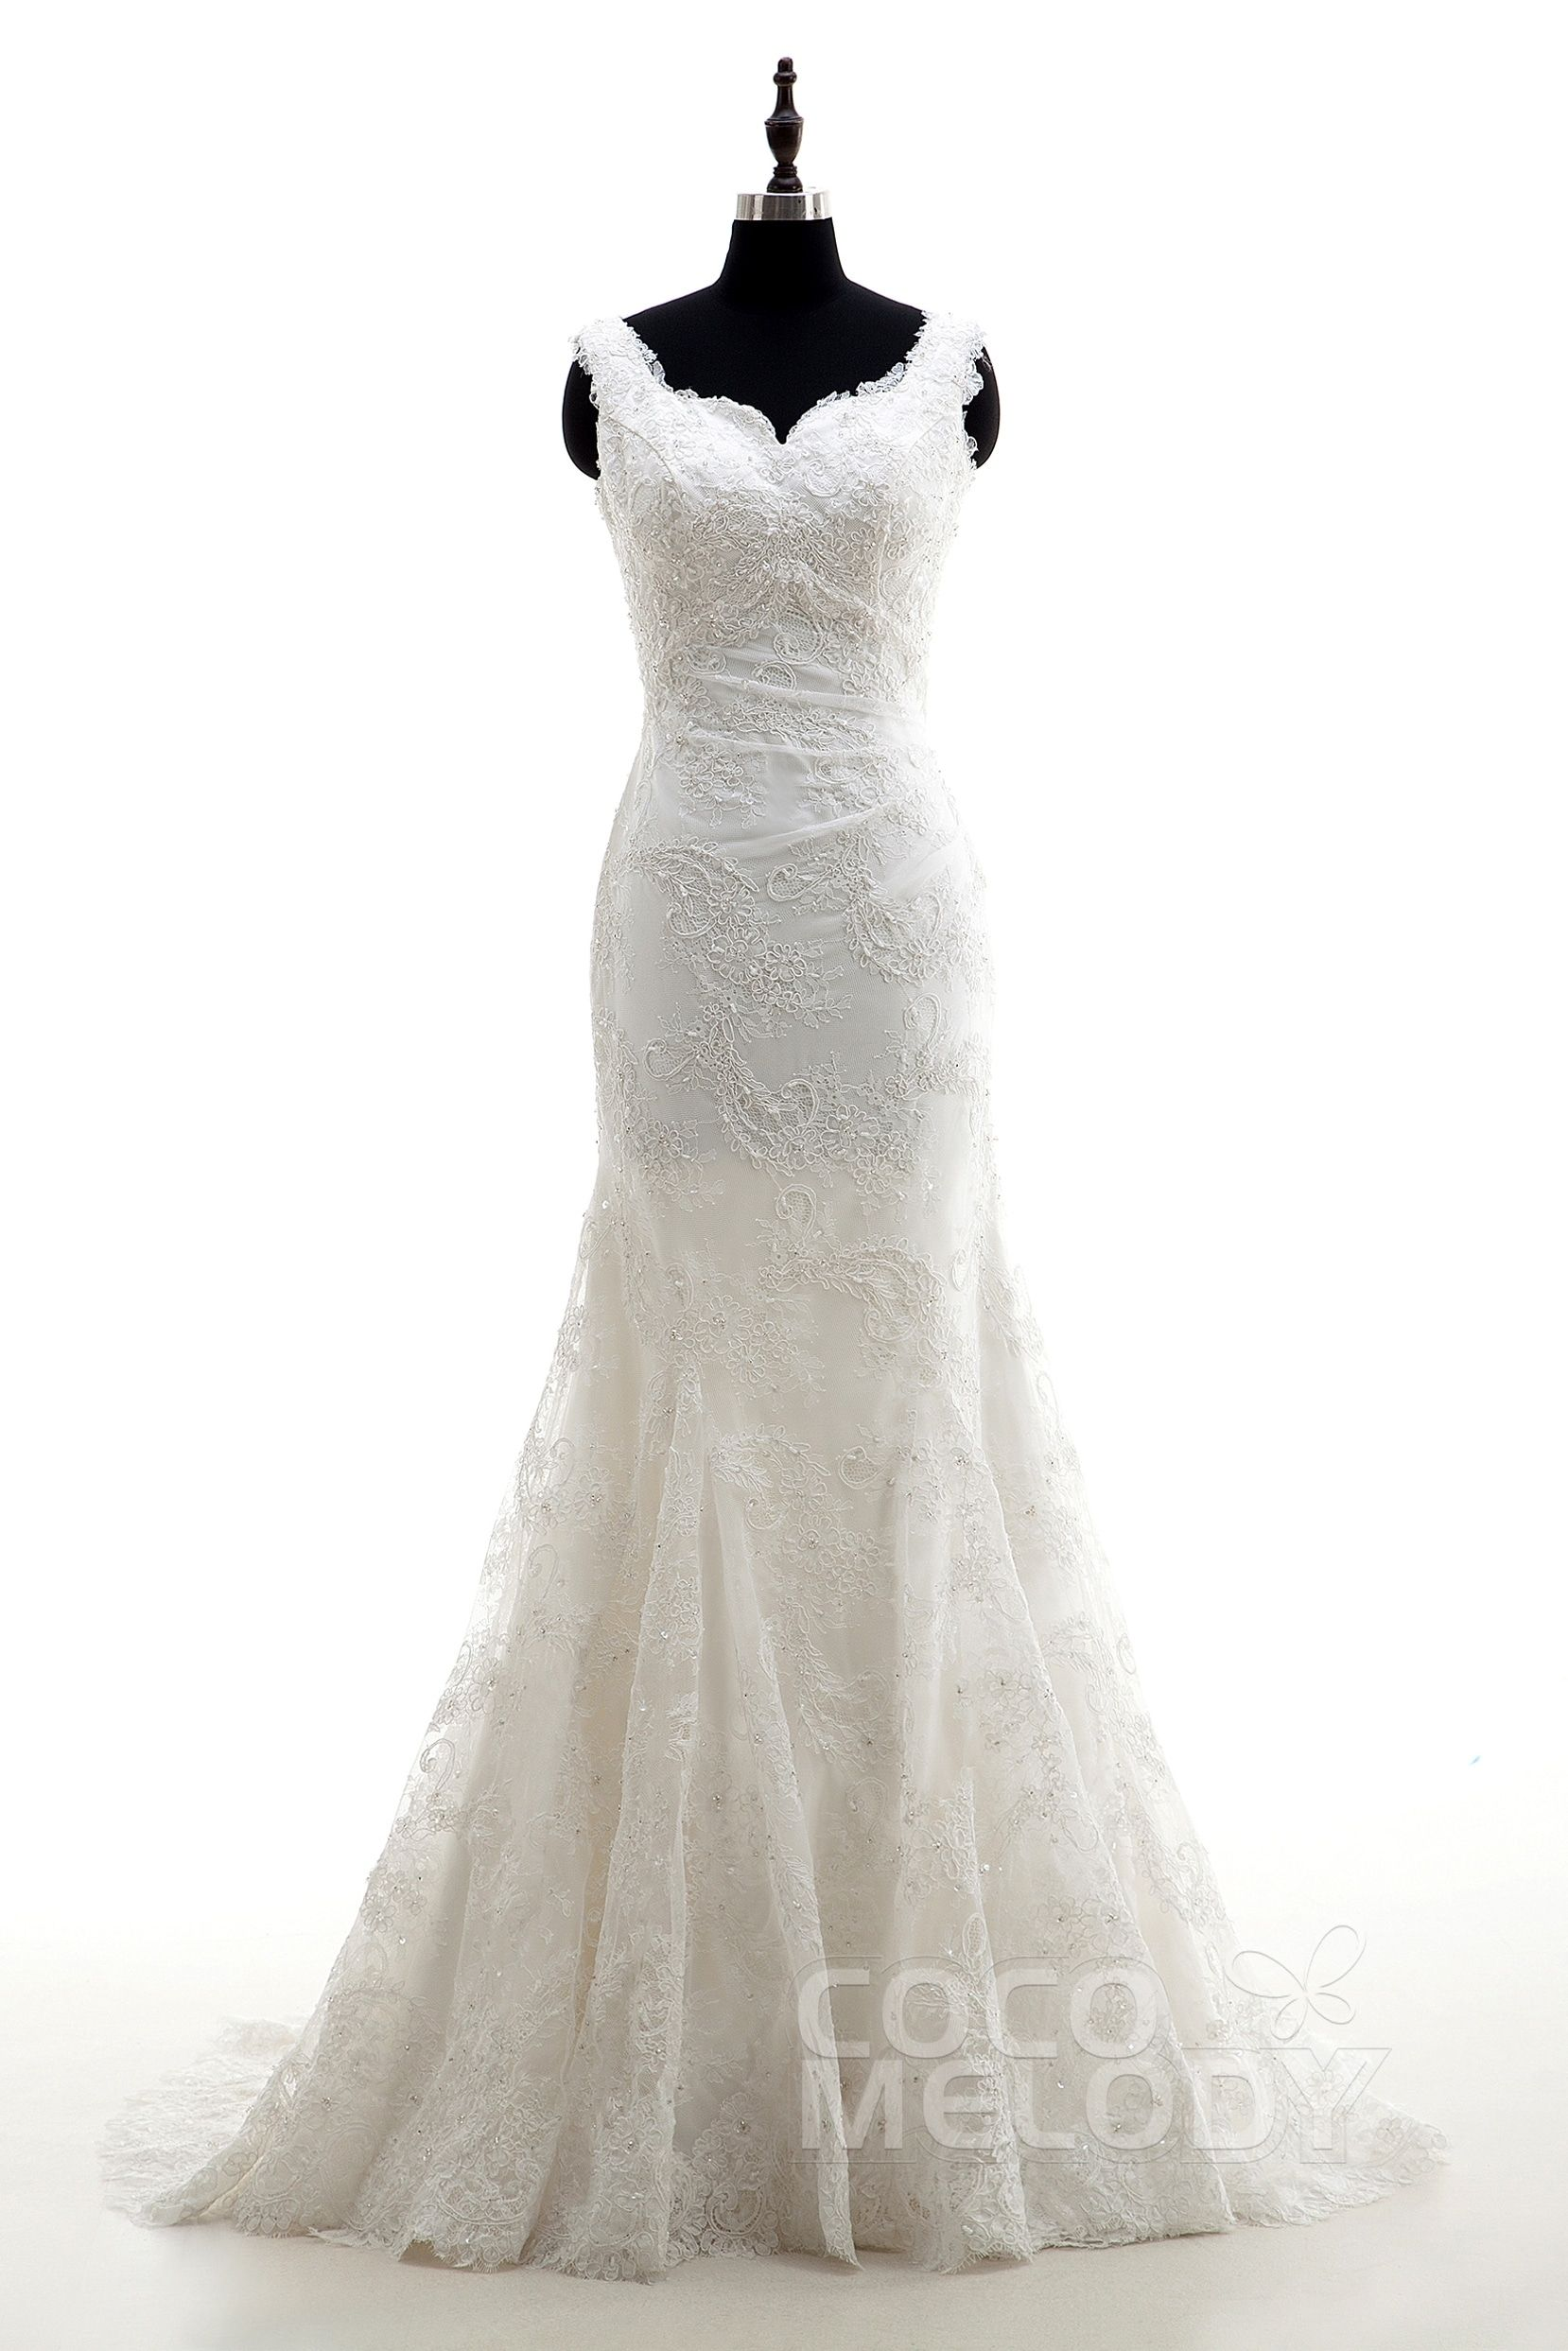 d9dada3e161a Queenly+Trumpet-Mermaid+Straps+Natural+Court+Train+Lace+Sleeveless+Open+Back +Wedding+Dress+Beading+LD3991